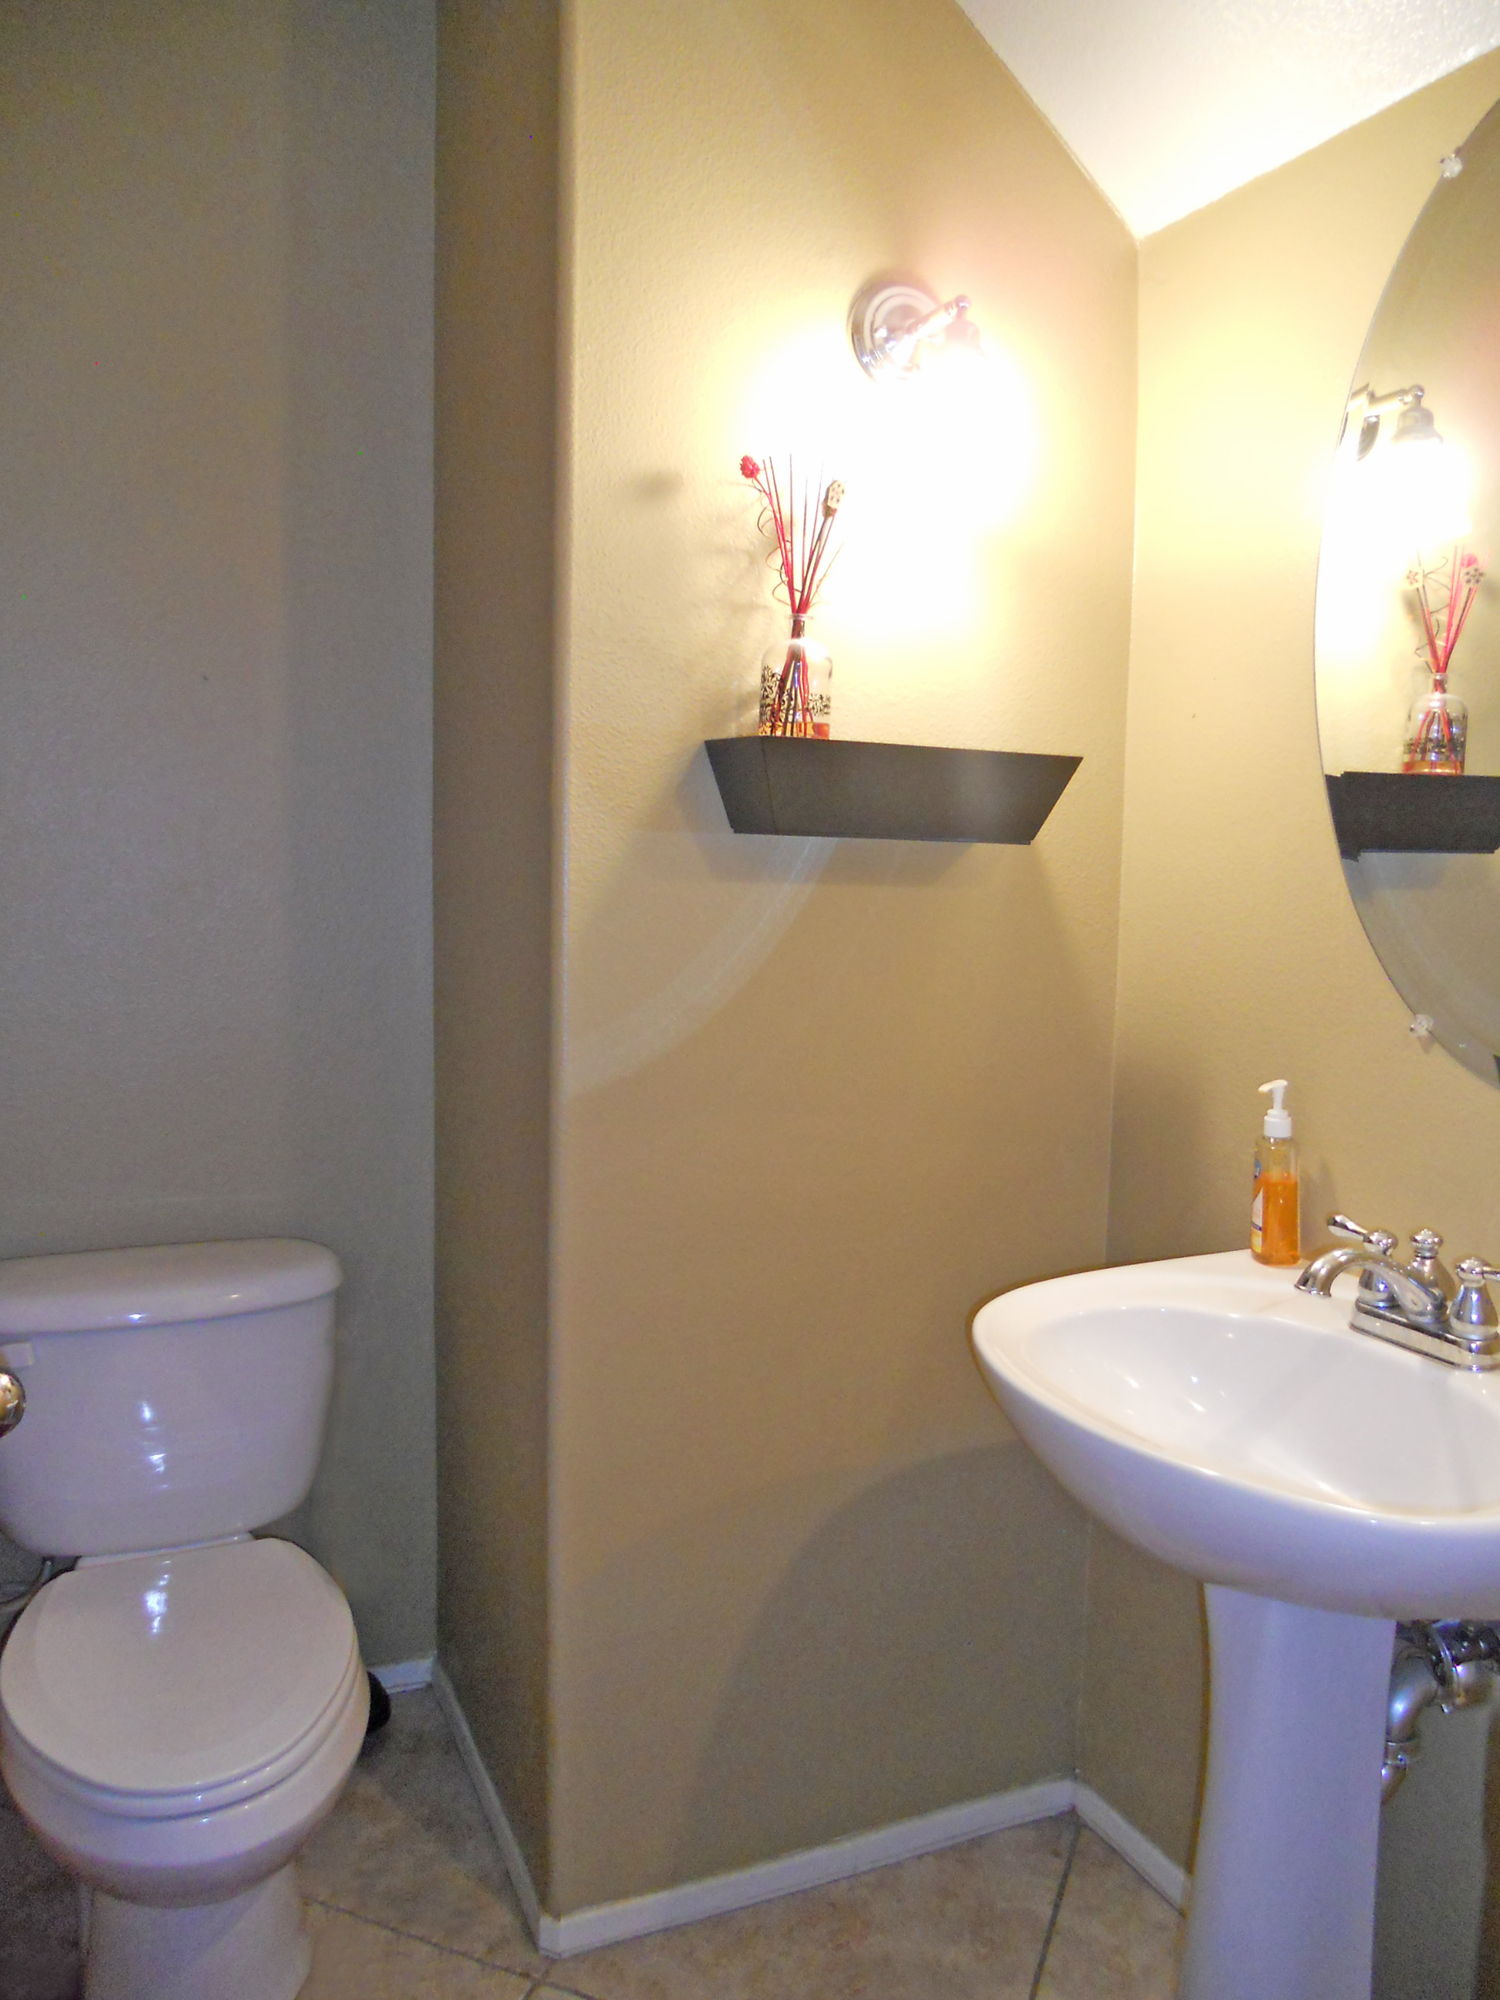 Great Convenient downstairs hall bath with tile floor and pedestal sink